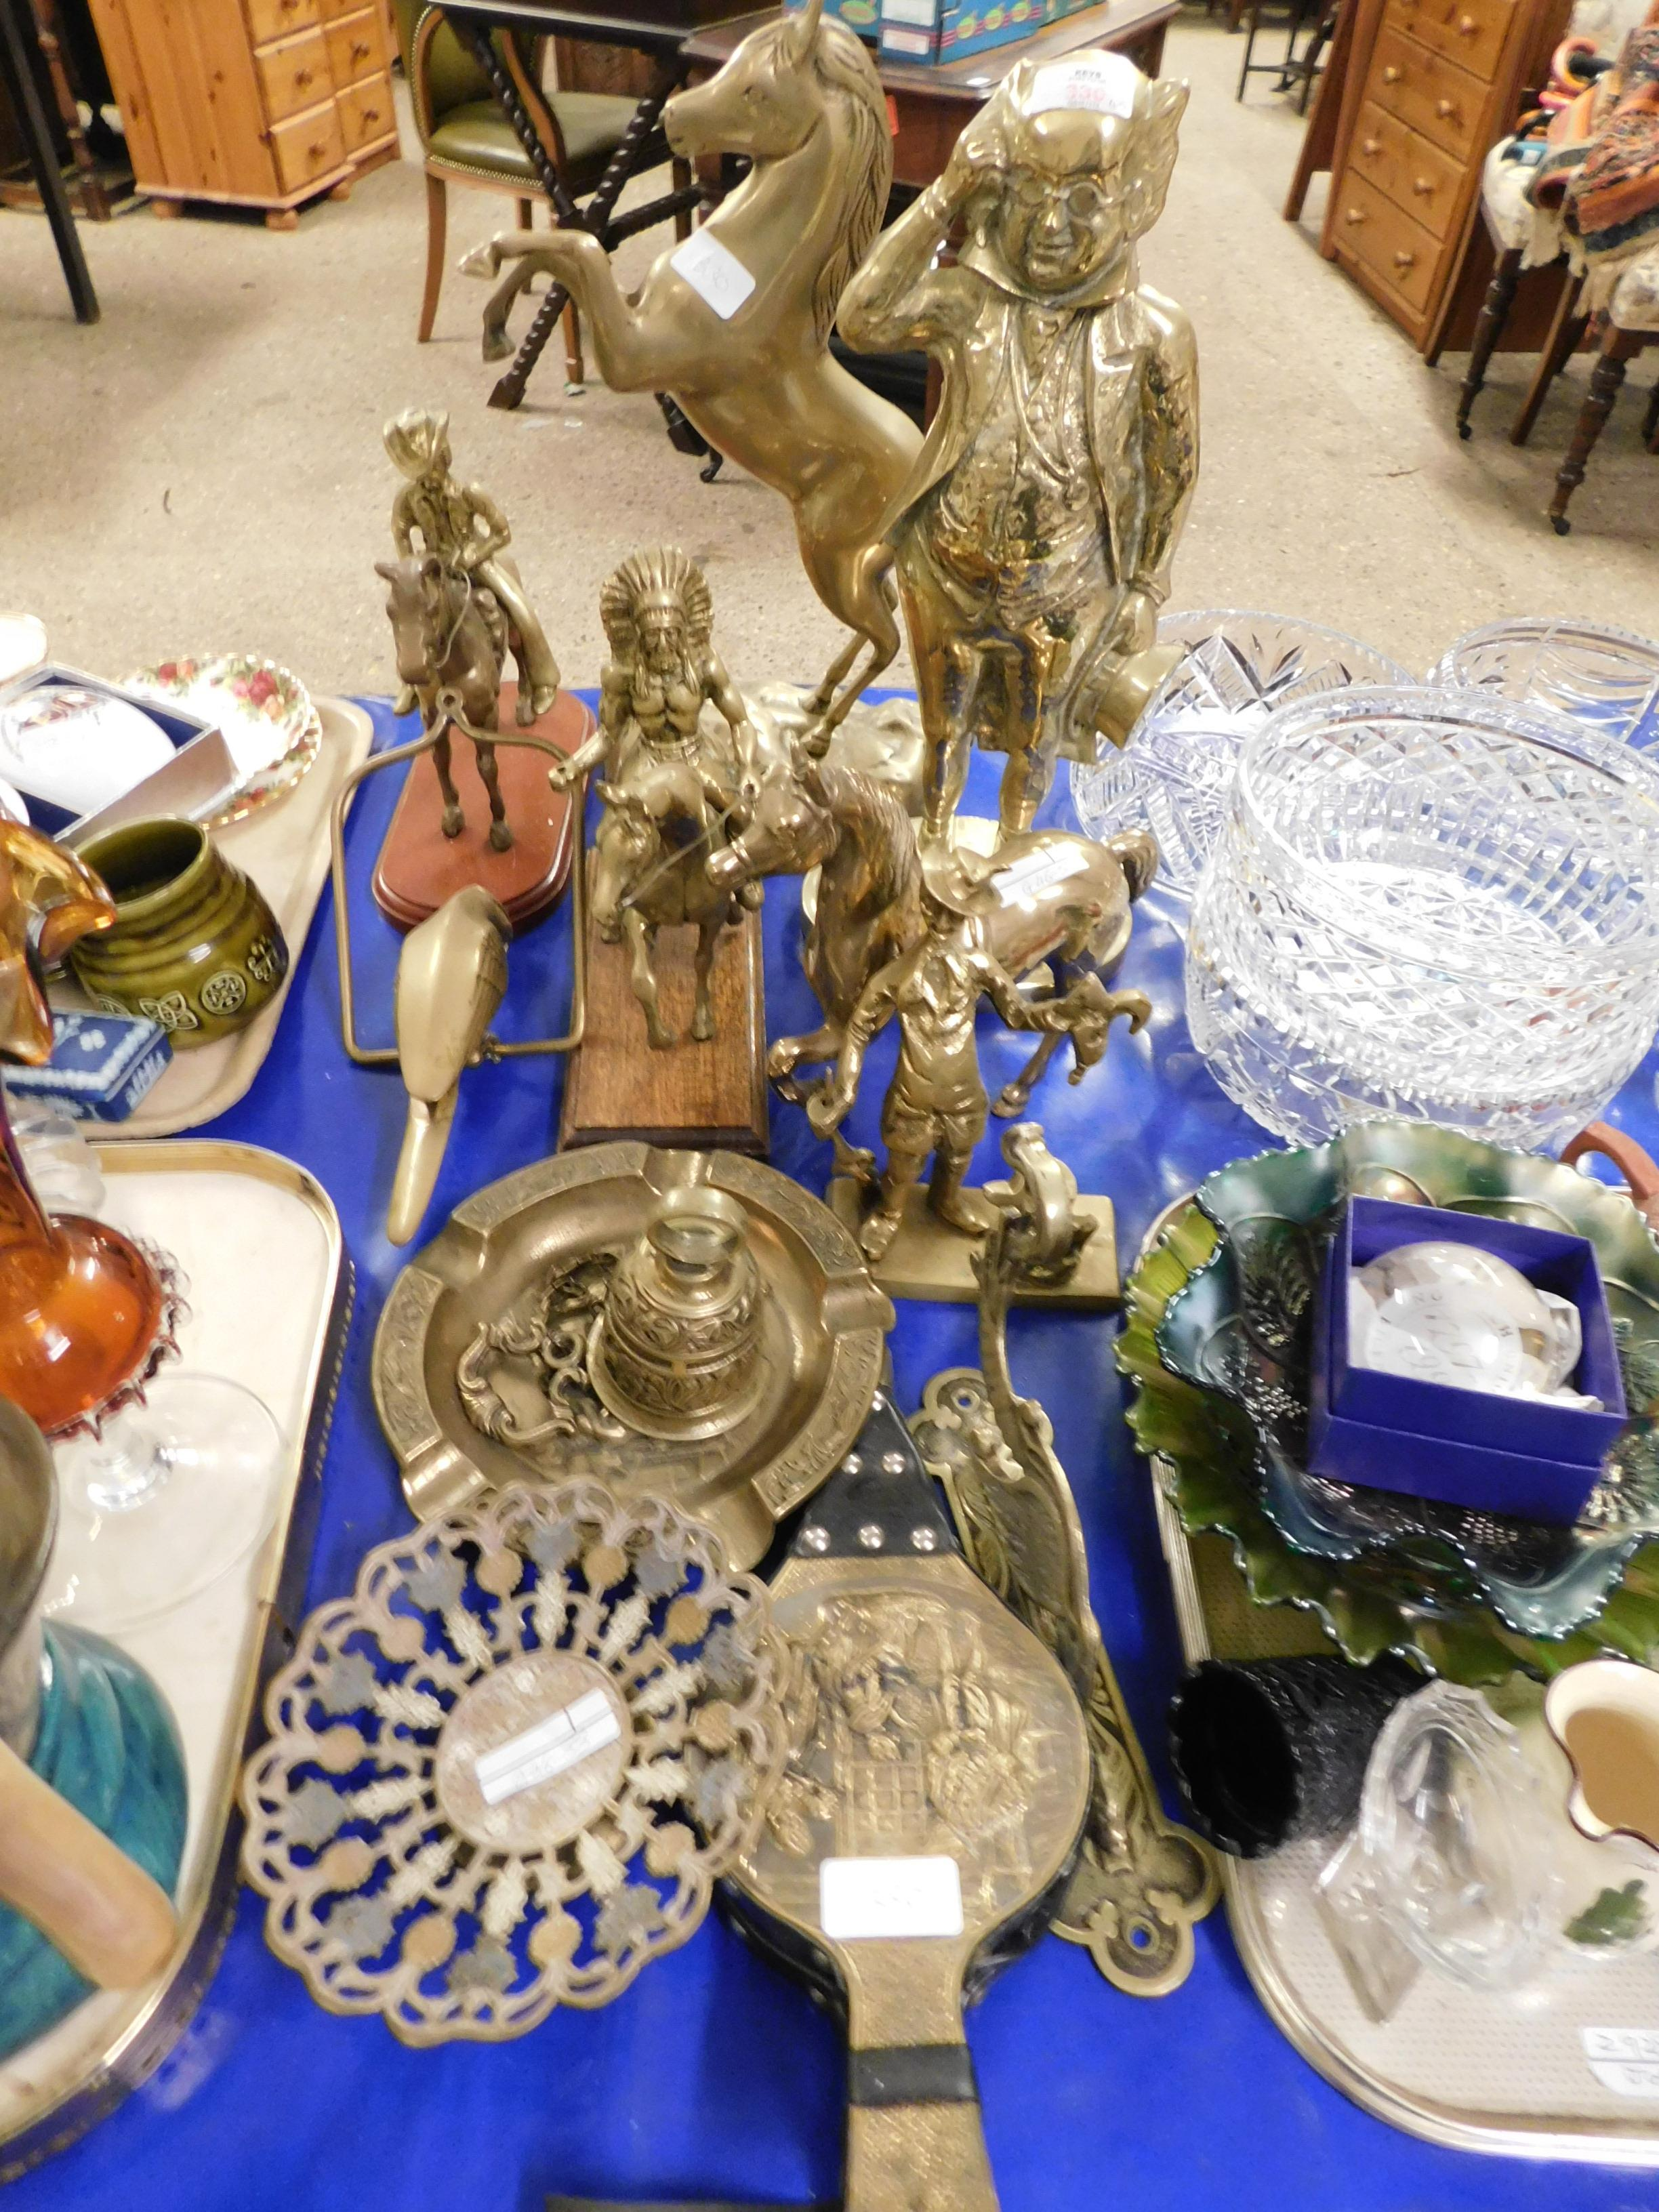 Lot 330 - MIXED LOT OF BRASS WARES TO INCLUDE A DICKENS FIGURE DOOR STOP, A REARING HORSE, SMALL BELLOWS ETC